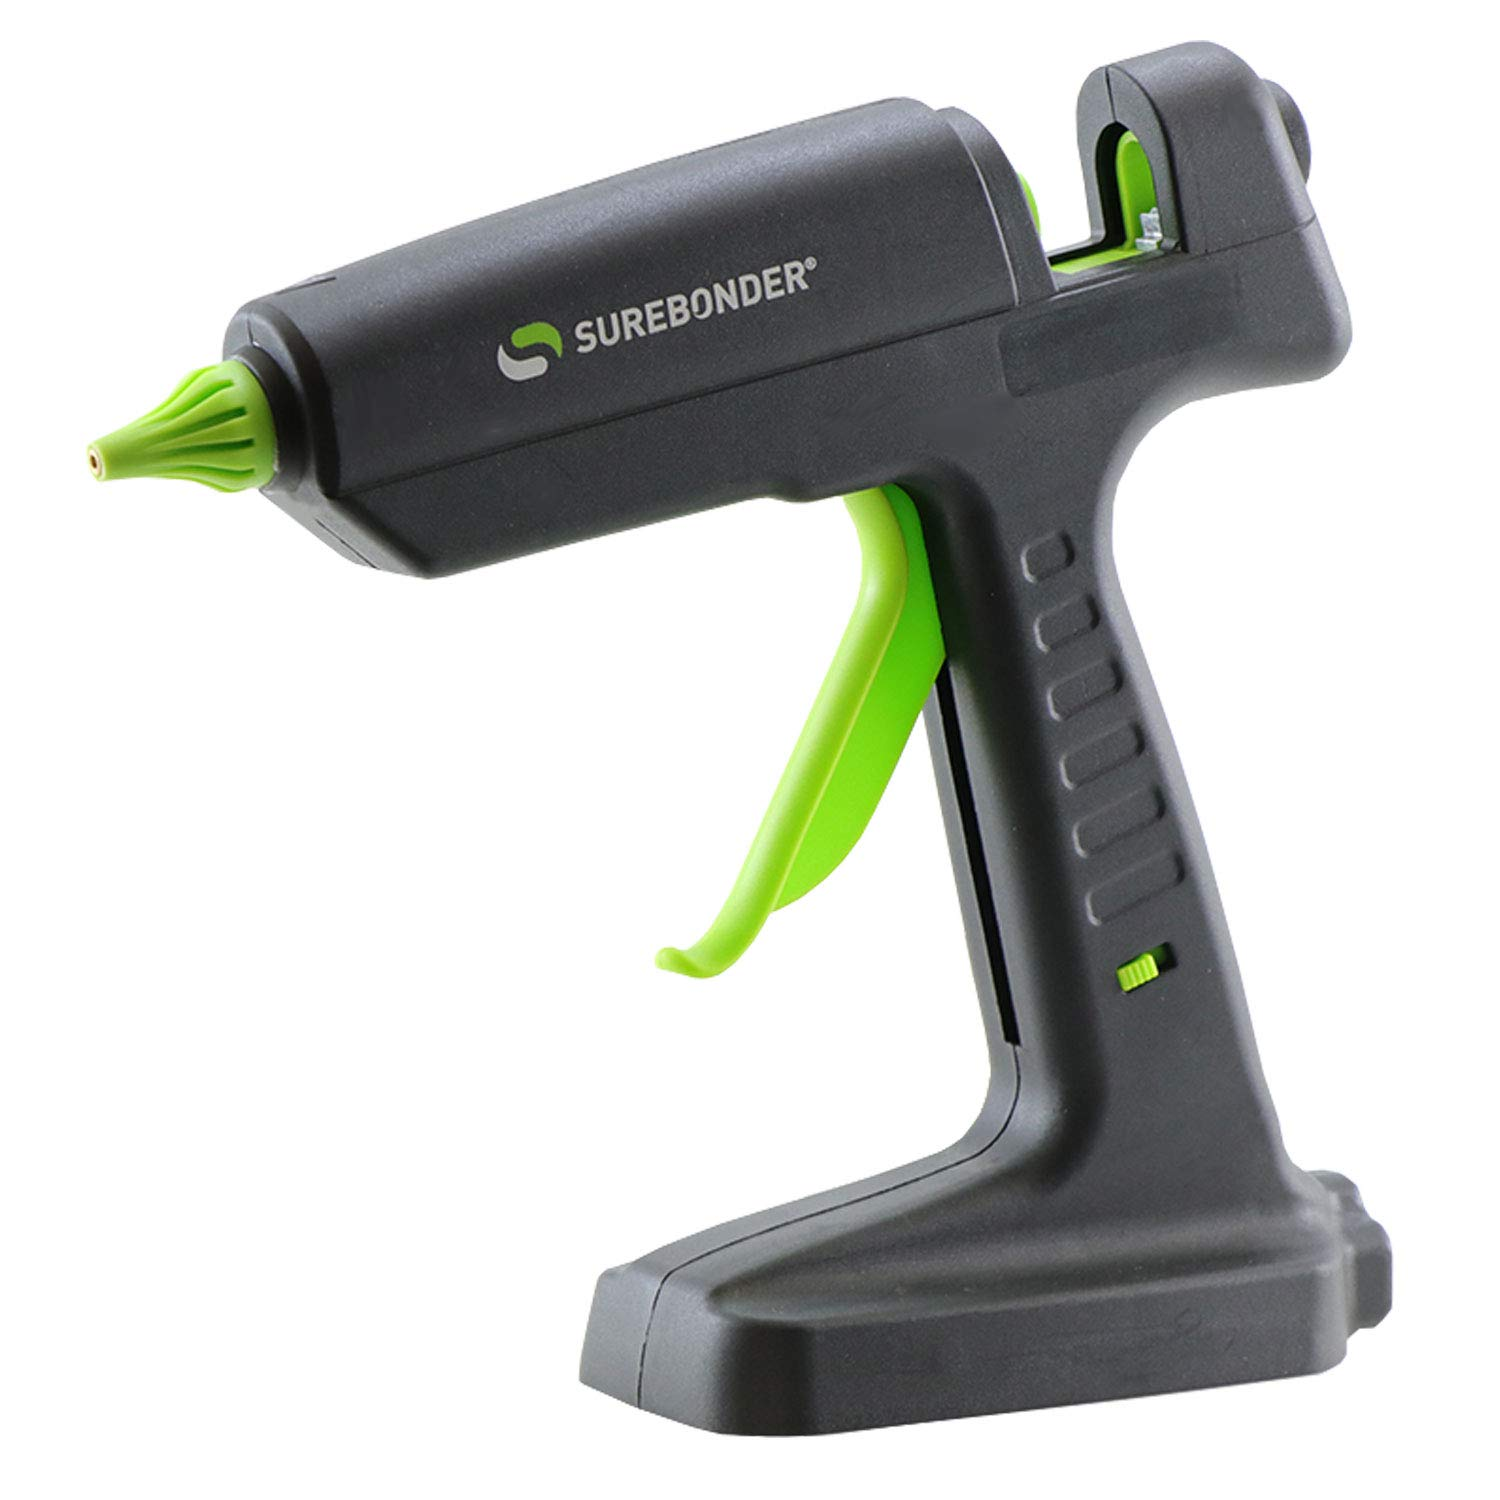 Surebonder HYBRID-120 AC Corded and Cordless Glue Gun, 120-watt (Battery and Charger Not Included)